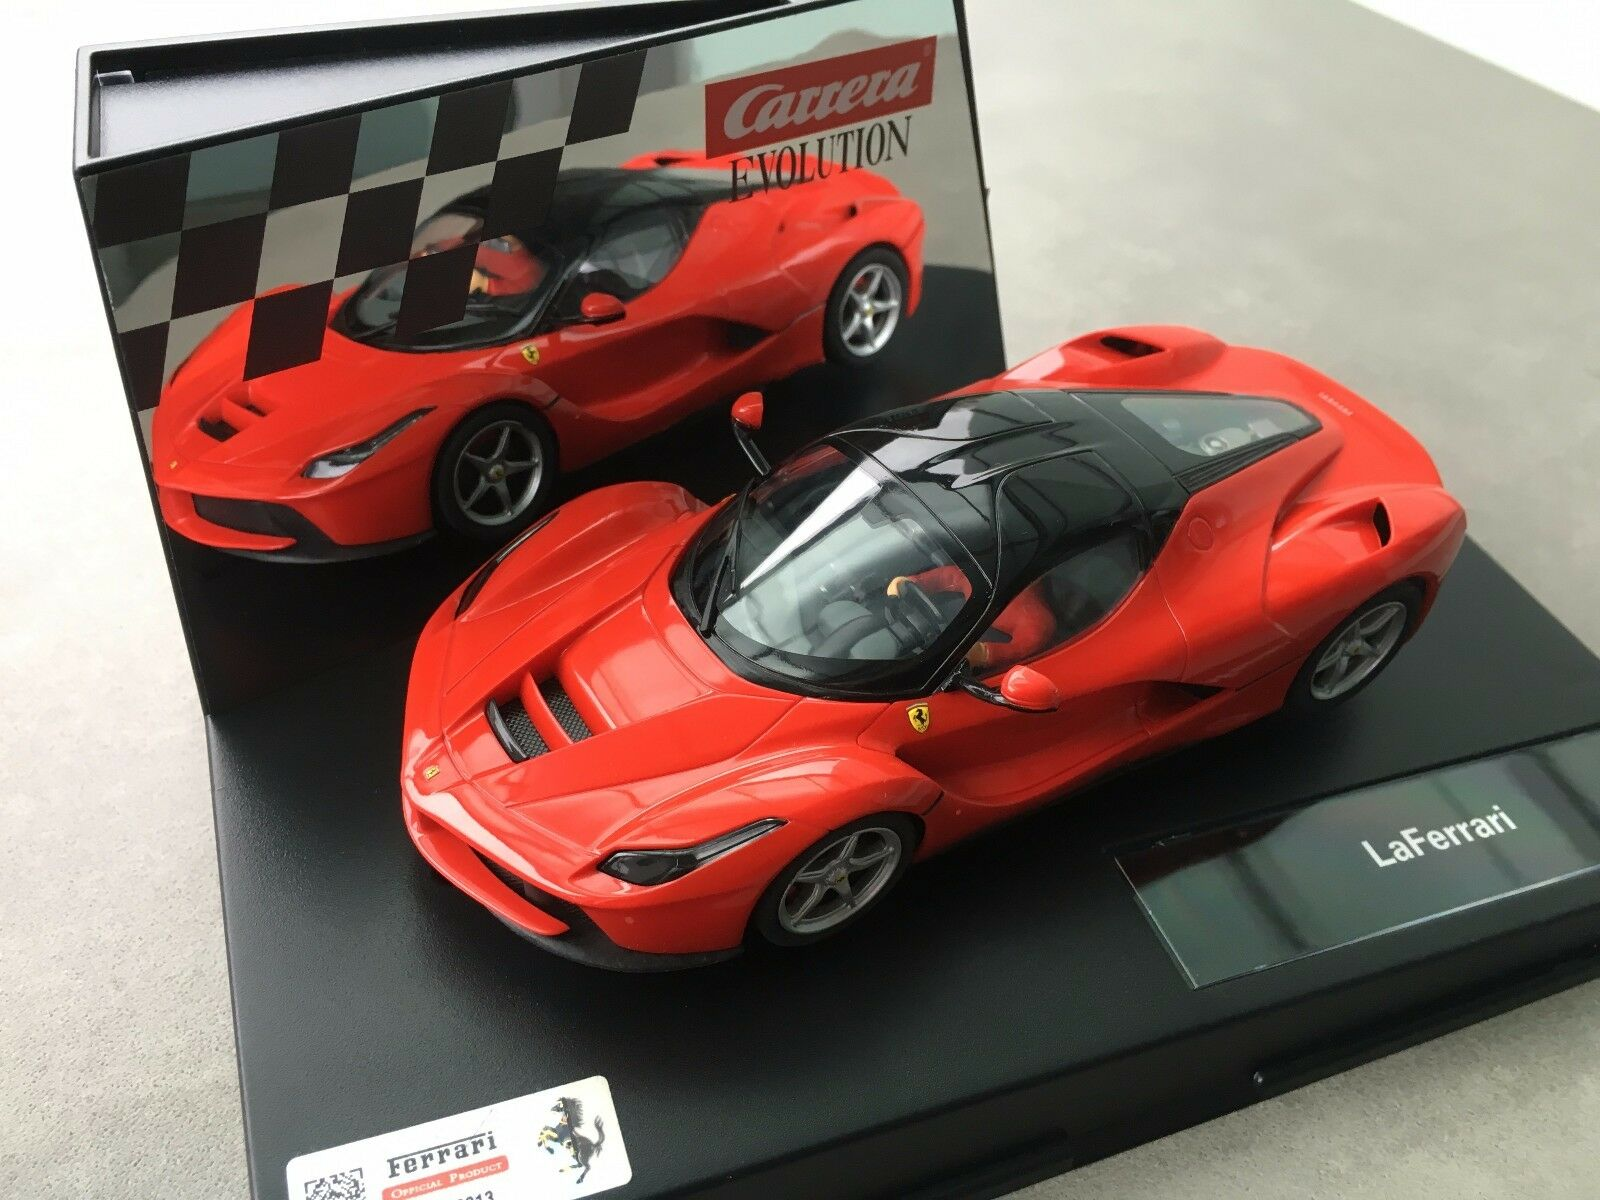 Carrera Evolution 27446 LaFerrari NUOVO conf. orig.